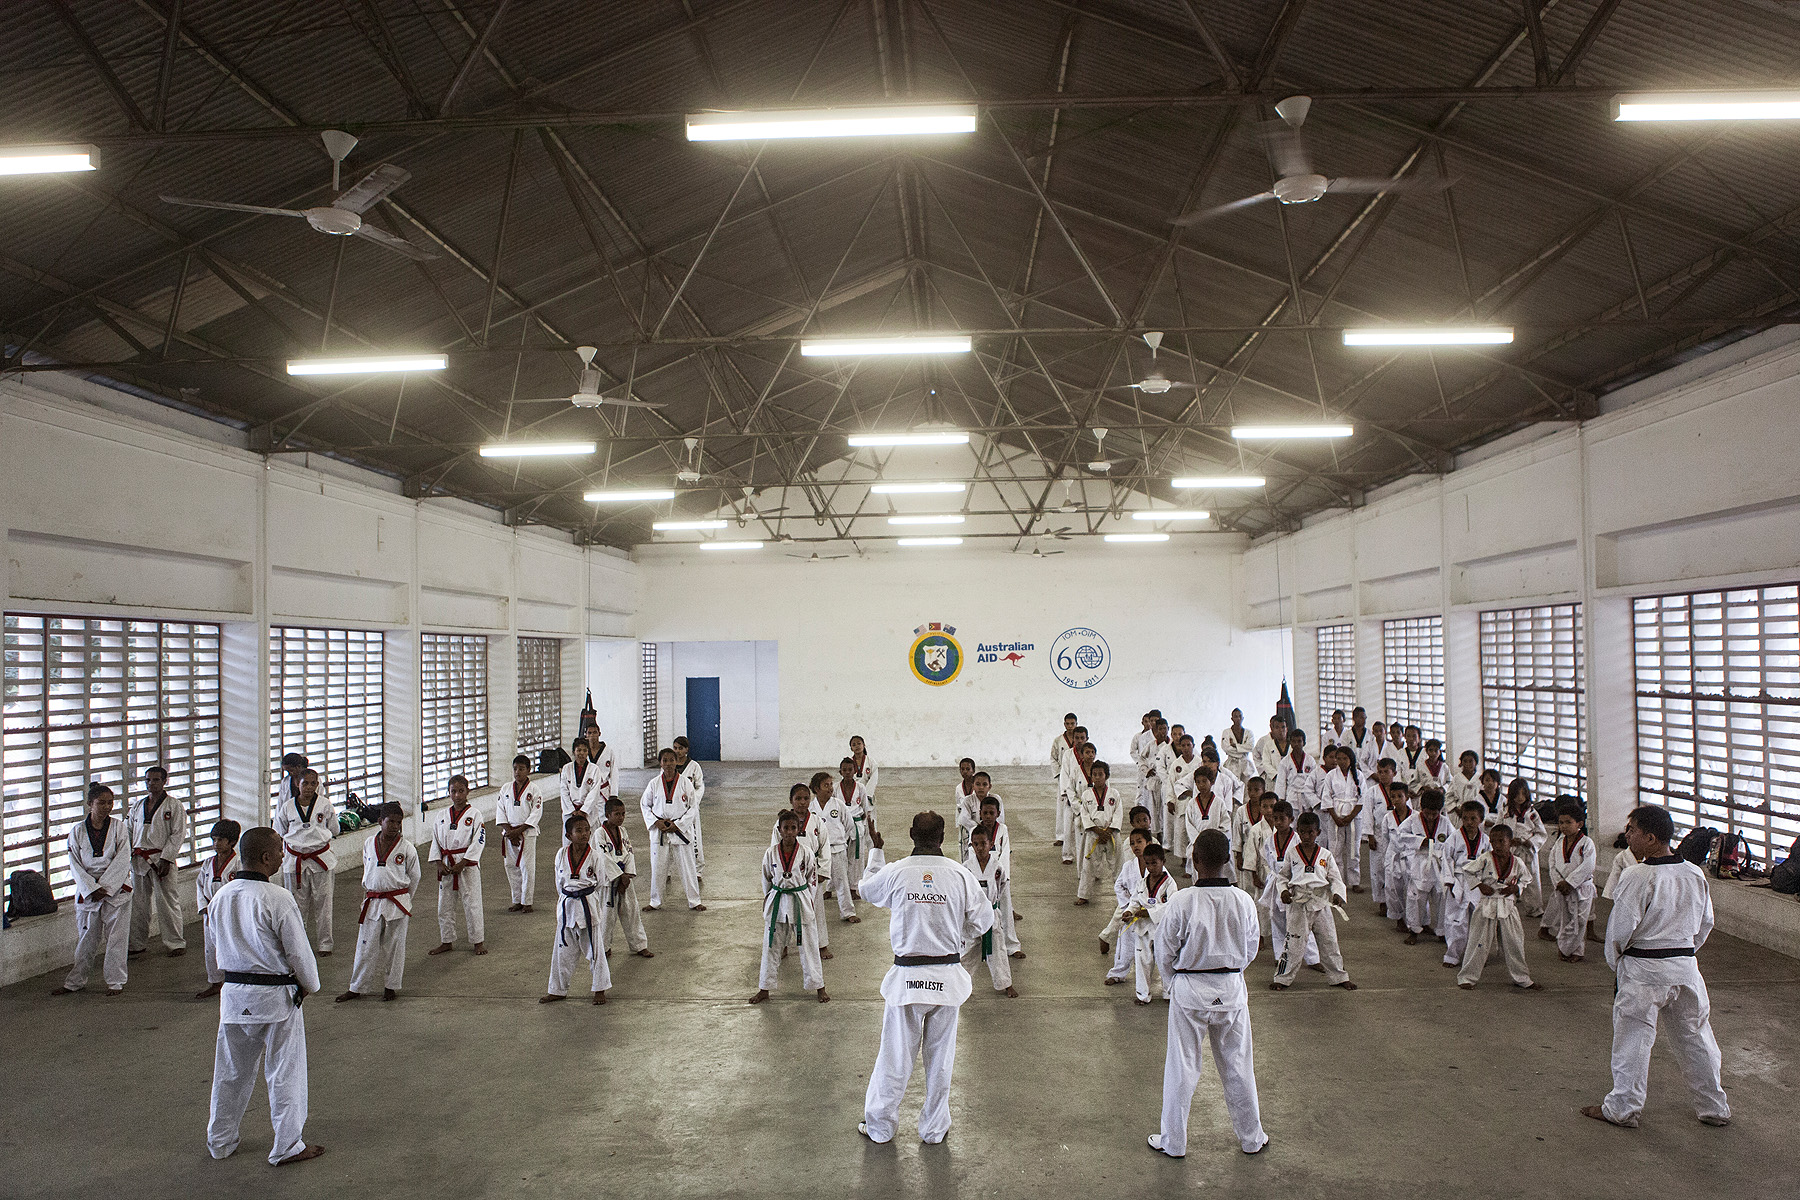 Taekwondo teachers instruct their students after a class in Dili - Martial arts are very popular in Dili